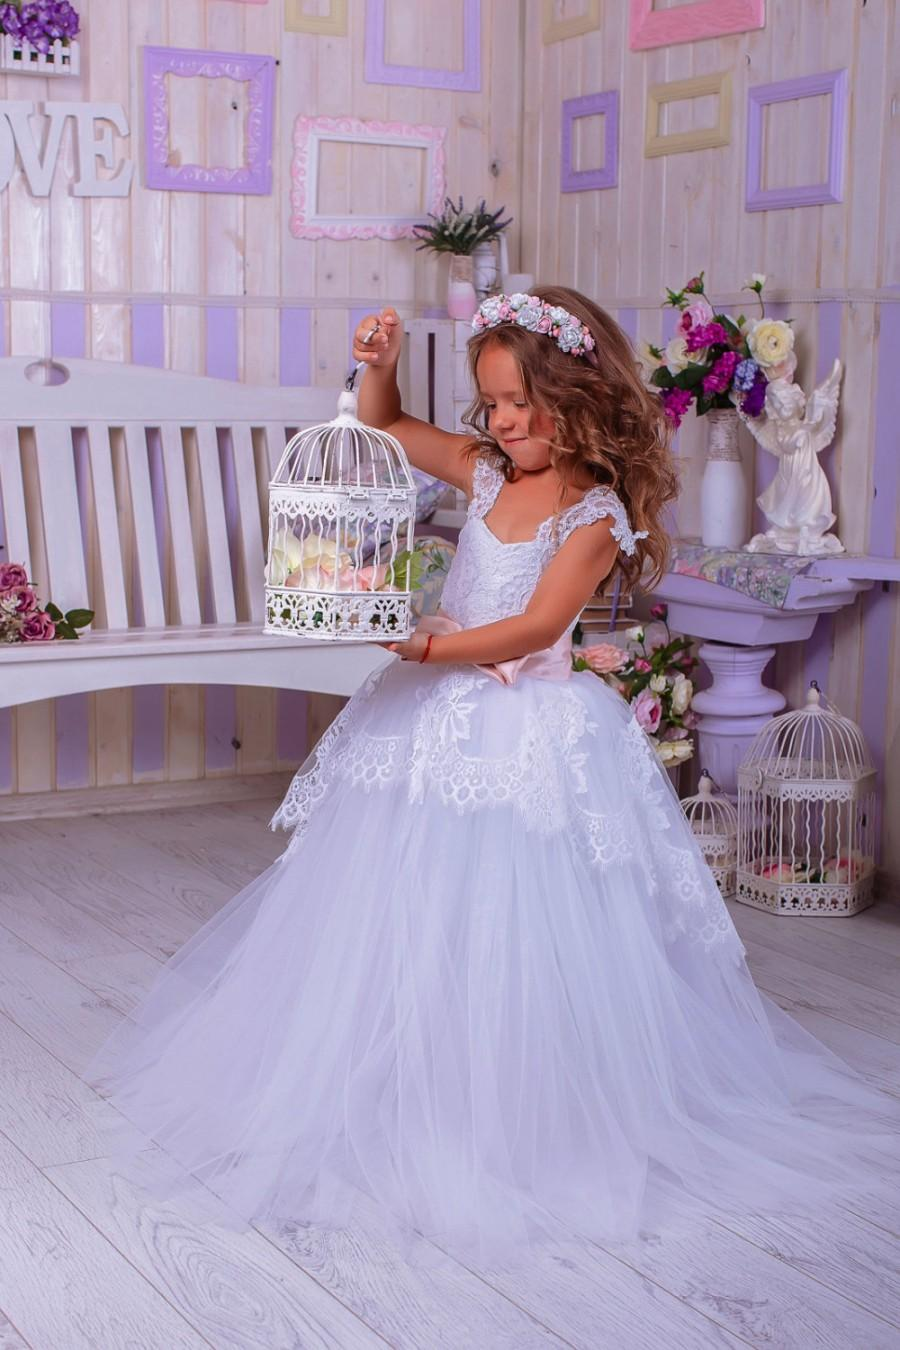 Lace Flower Girl Dresswhite Flower Girl Dresswedding Party Dress